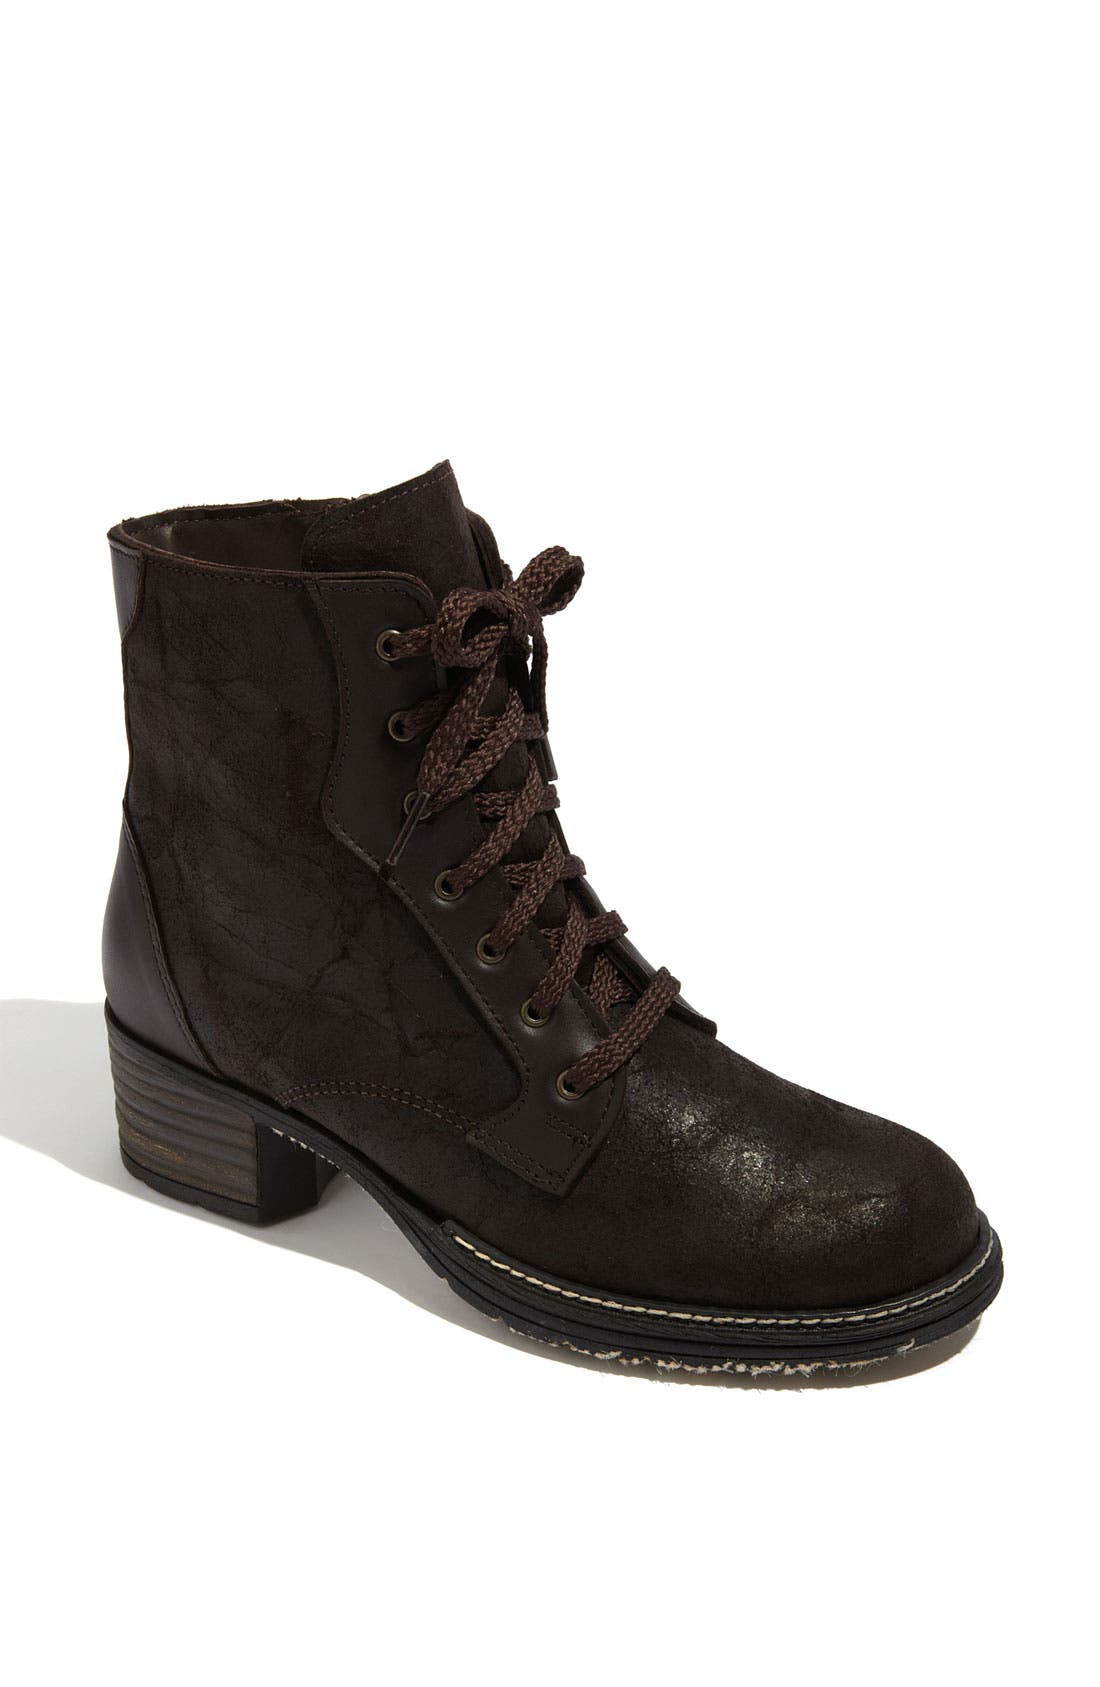 Alternate Image 1 Selected - Martino 'Daphnee' Boot